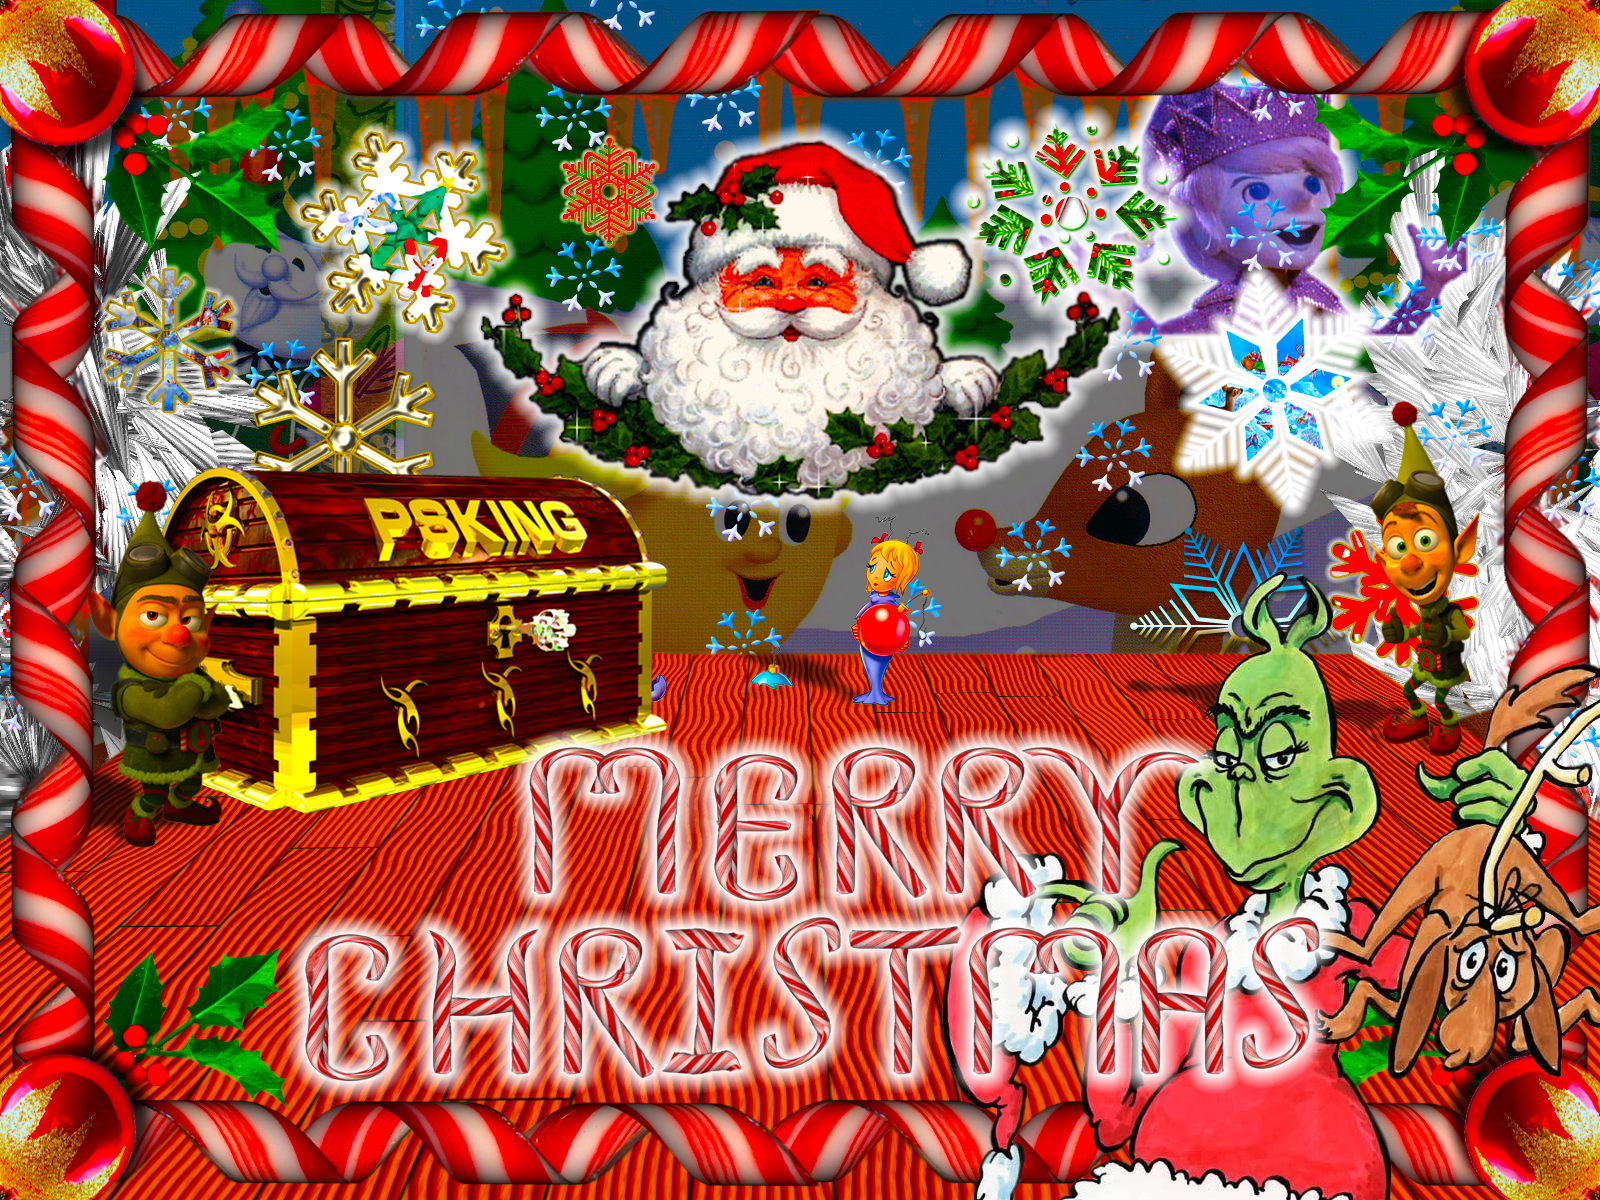 written words Images for Christmas 2014